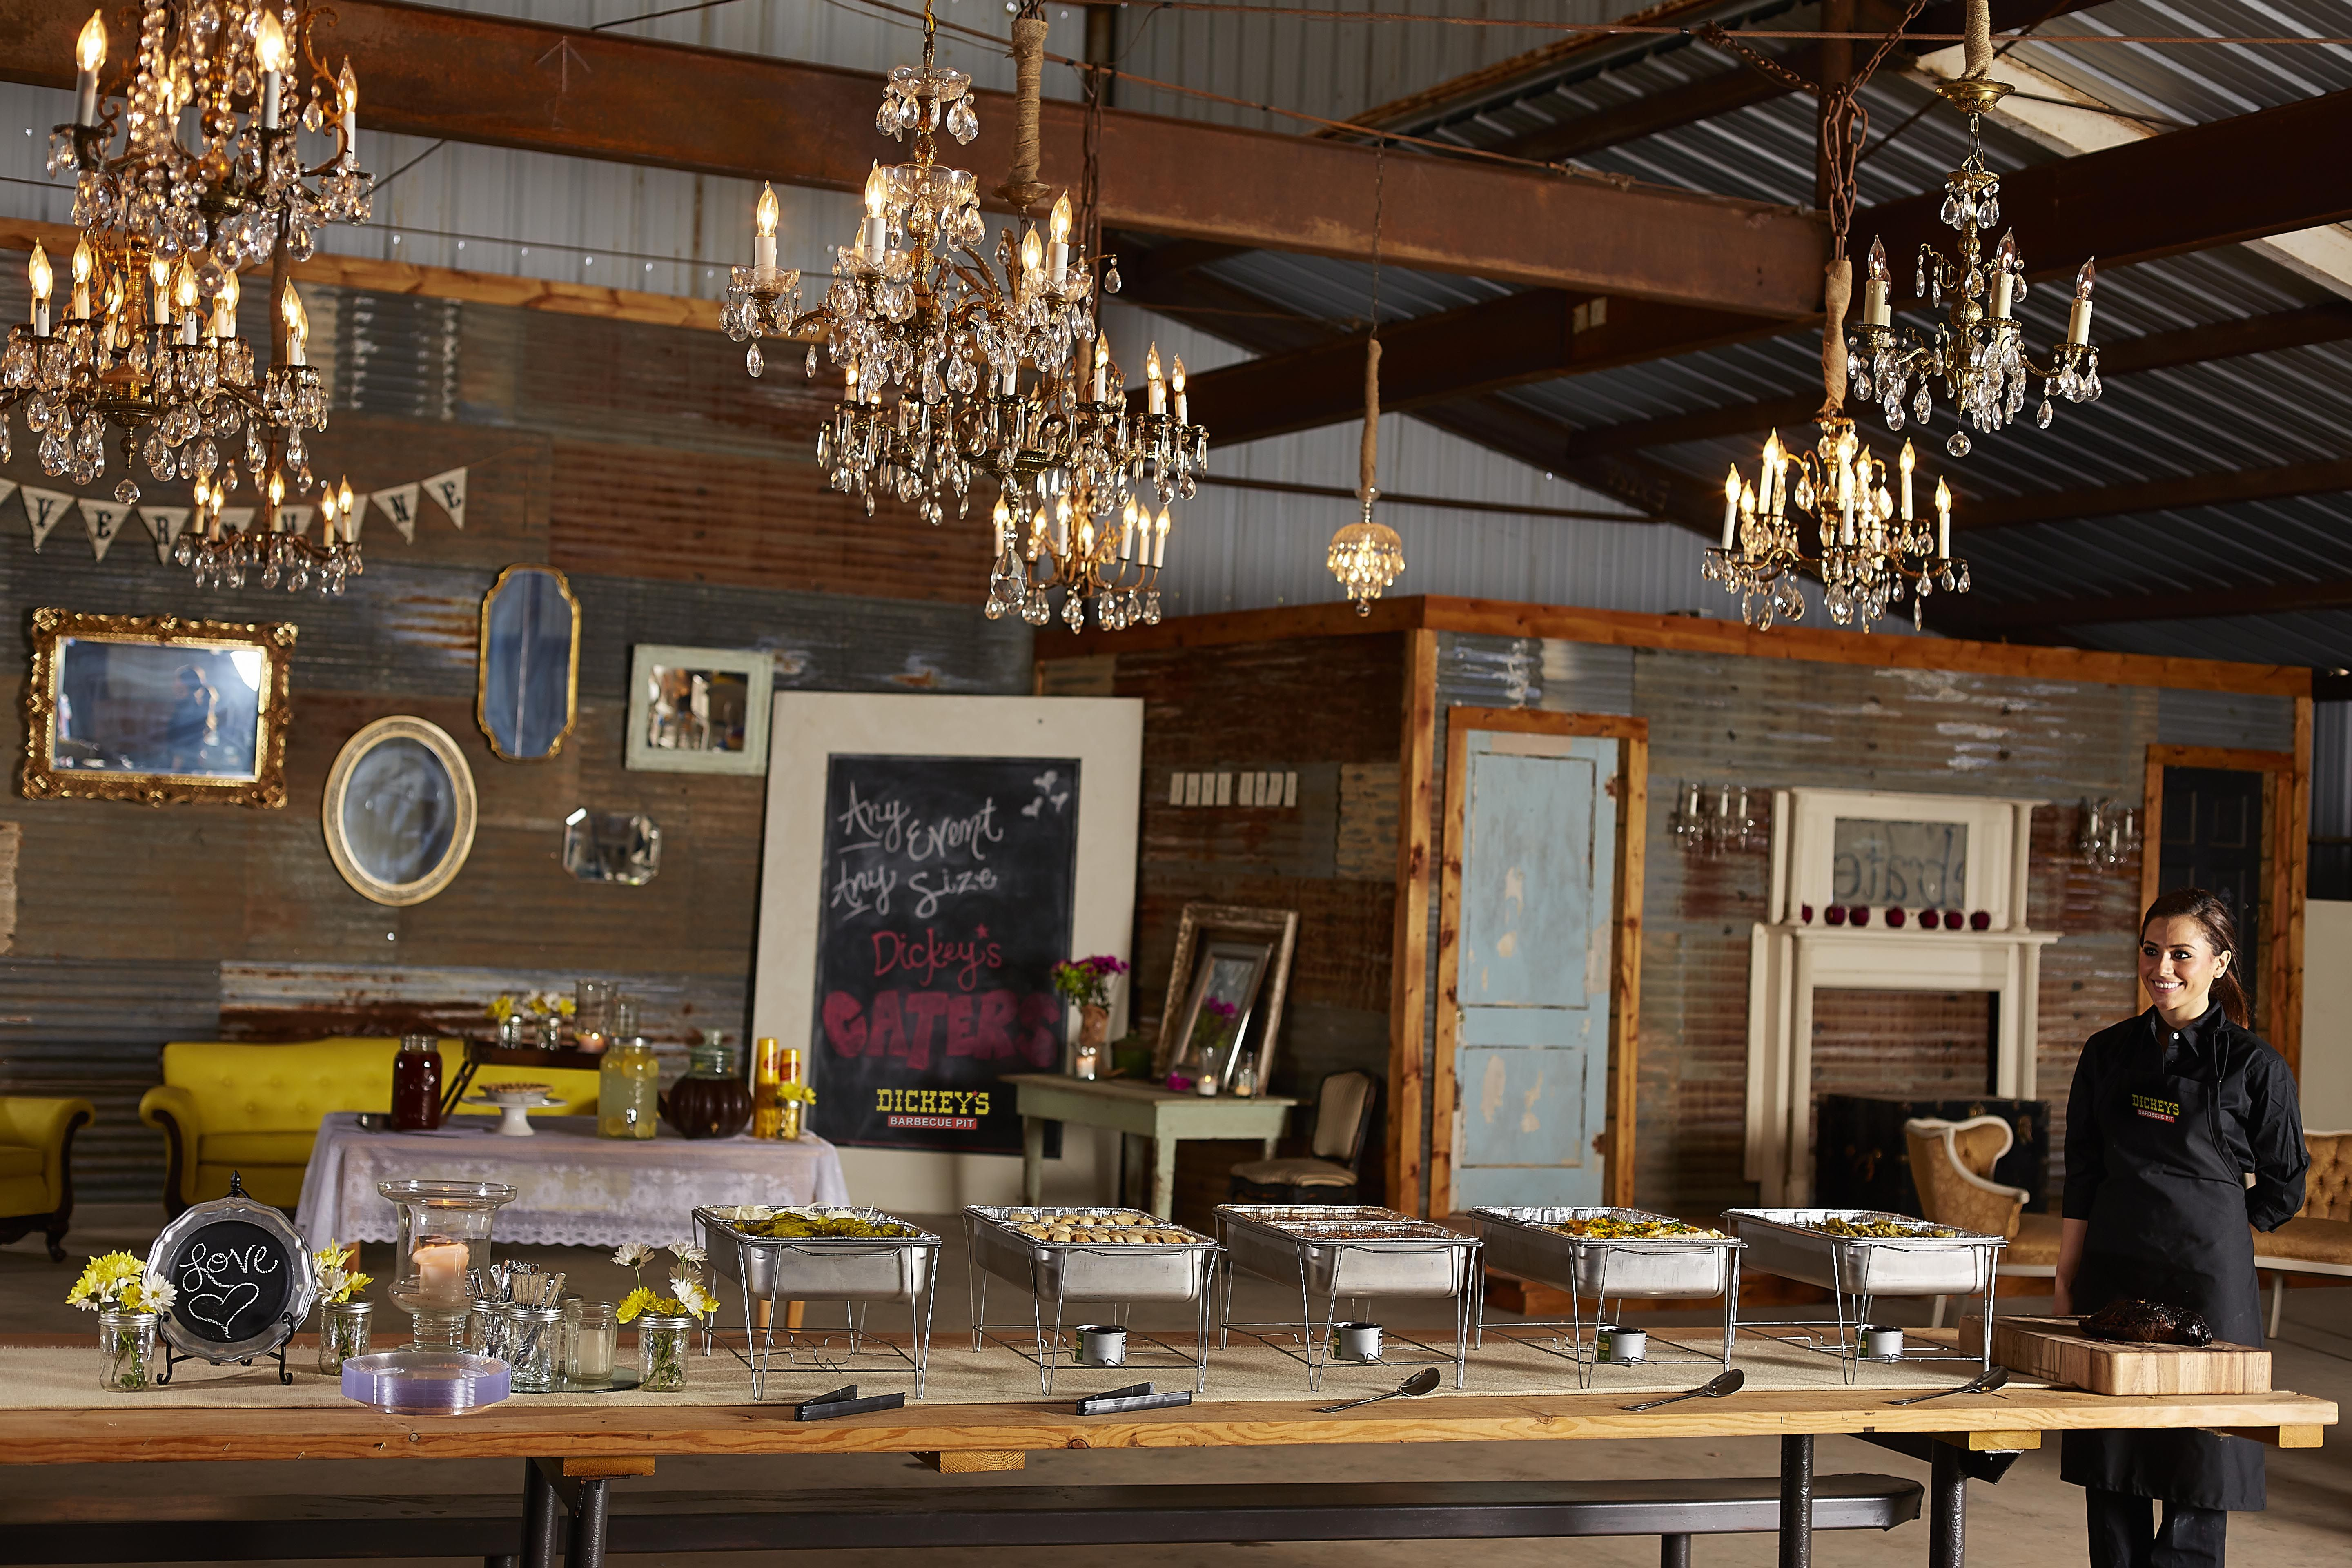 Dickey's caters a country wedding in a chic barn in Texas